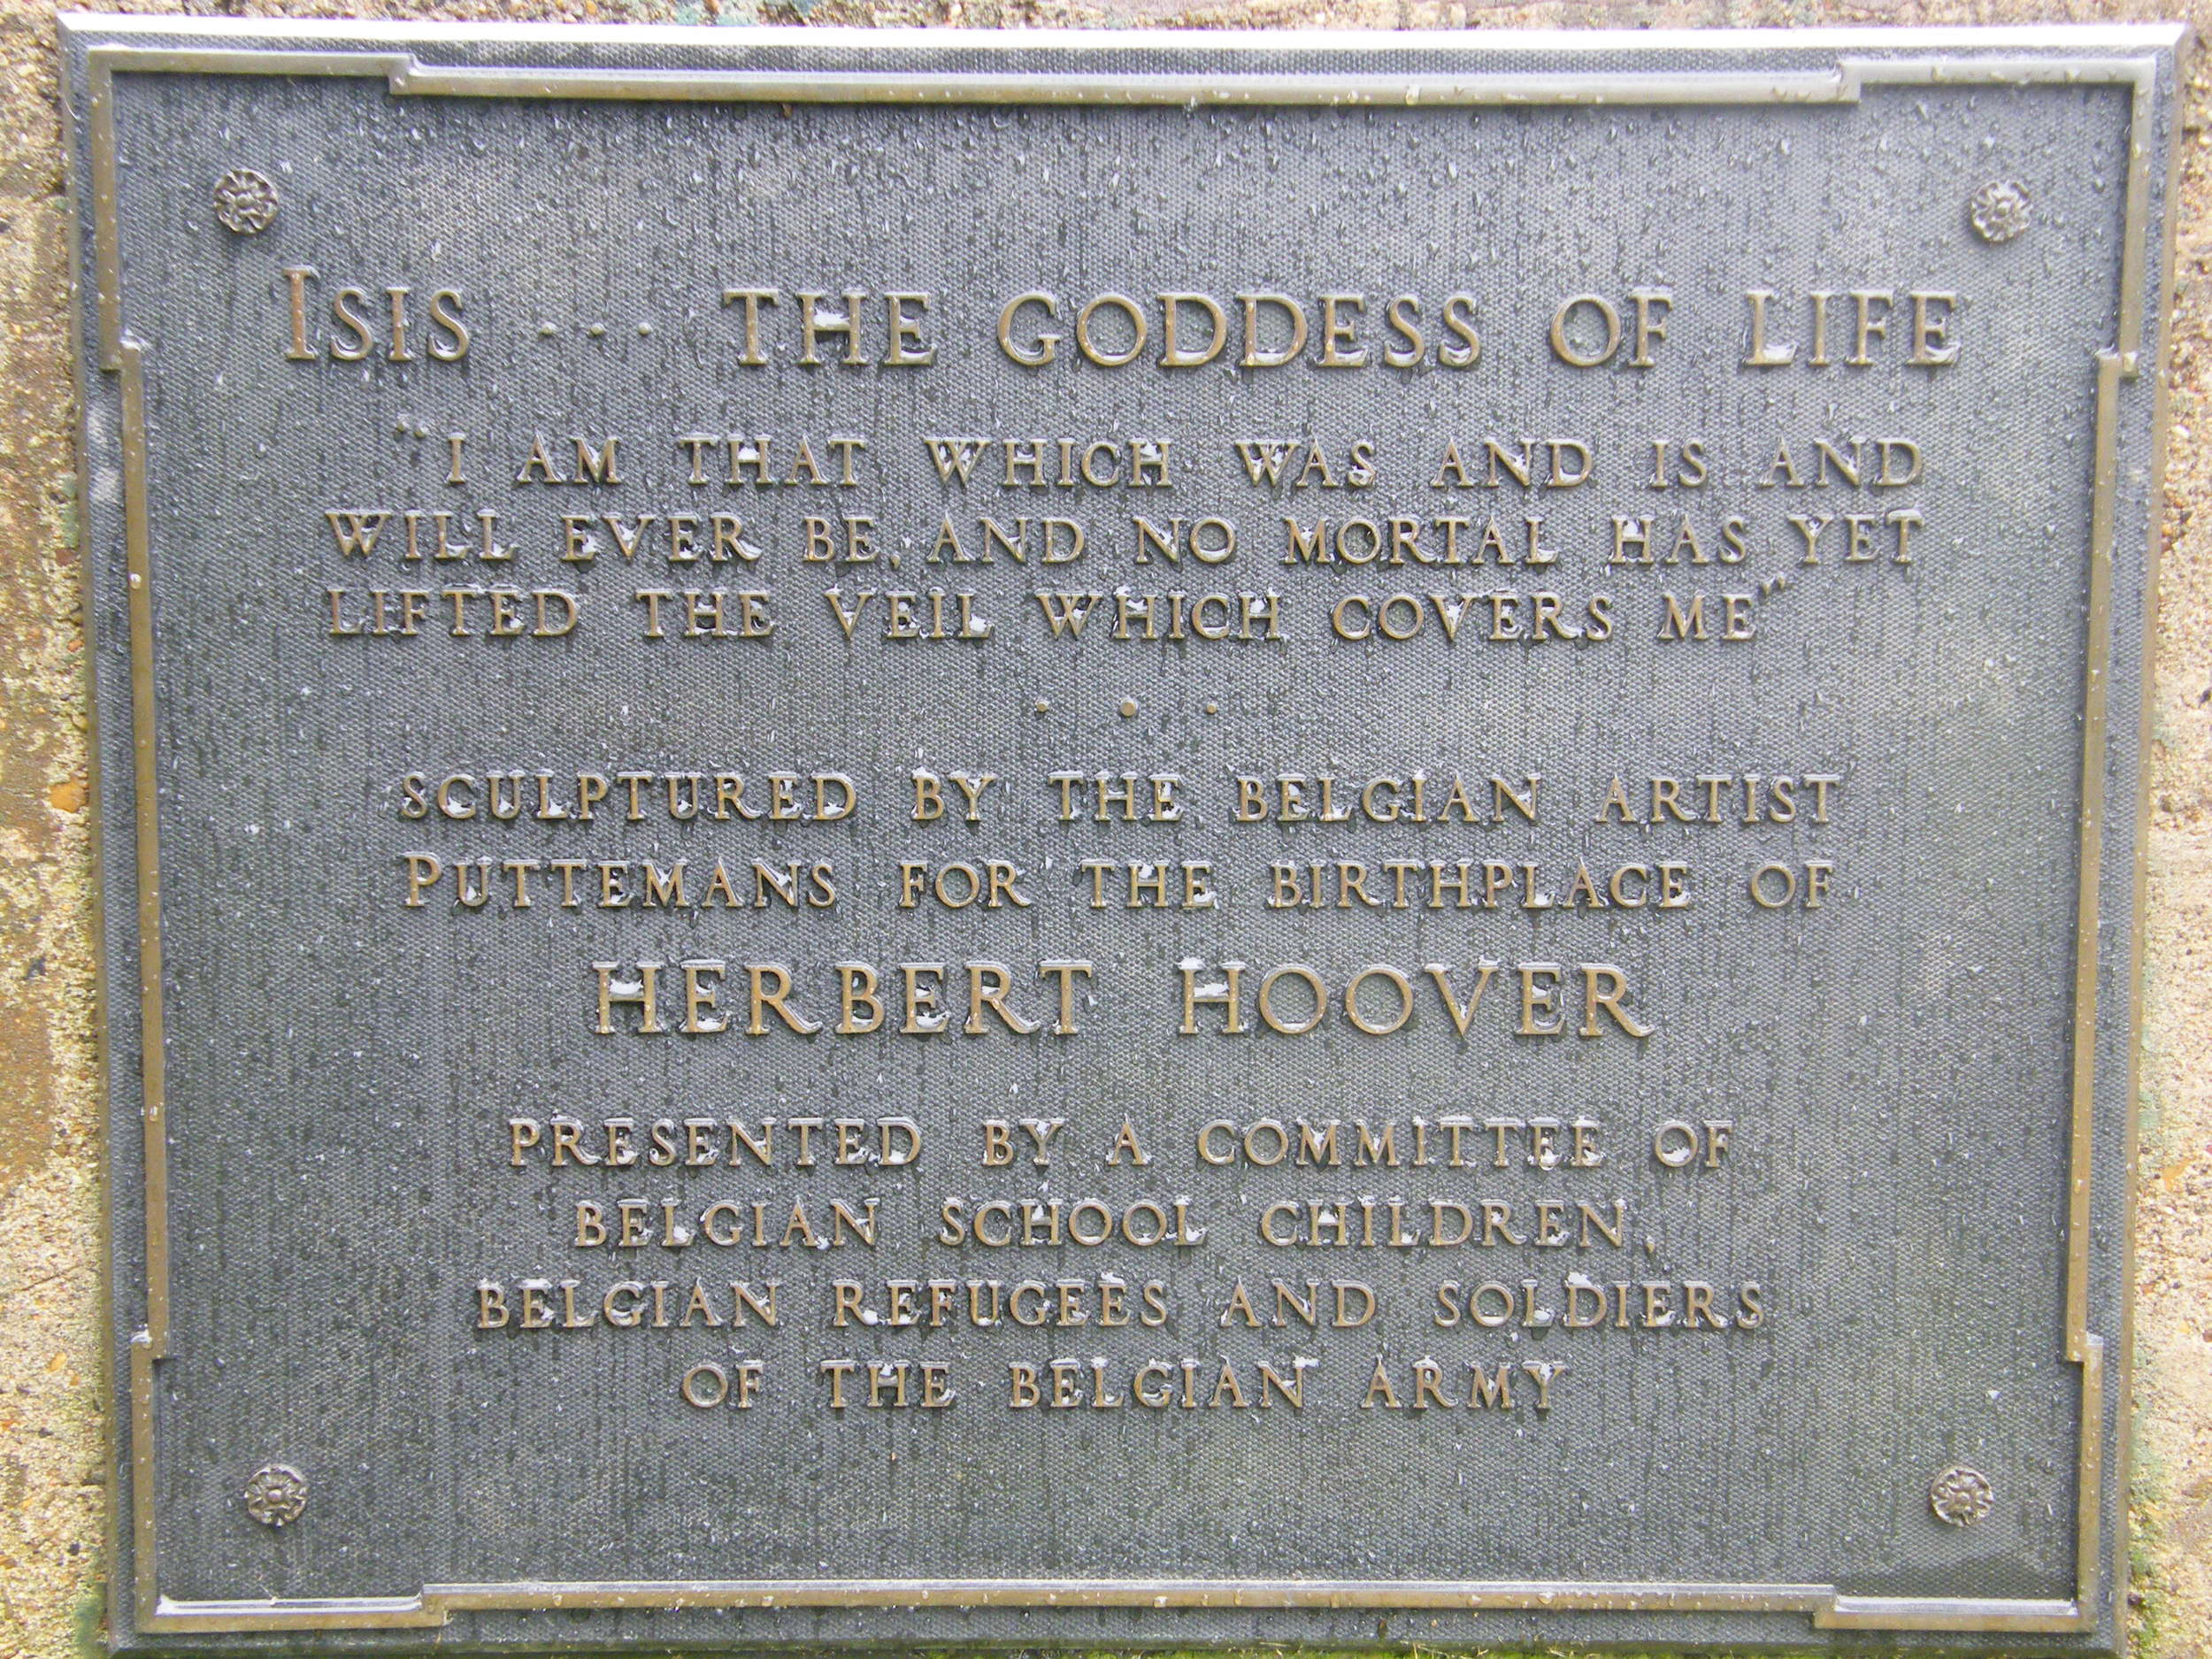 Translated plaque on the Isis sculpture